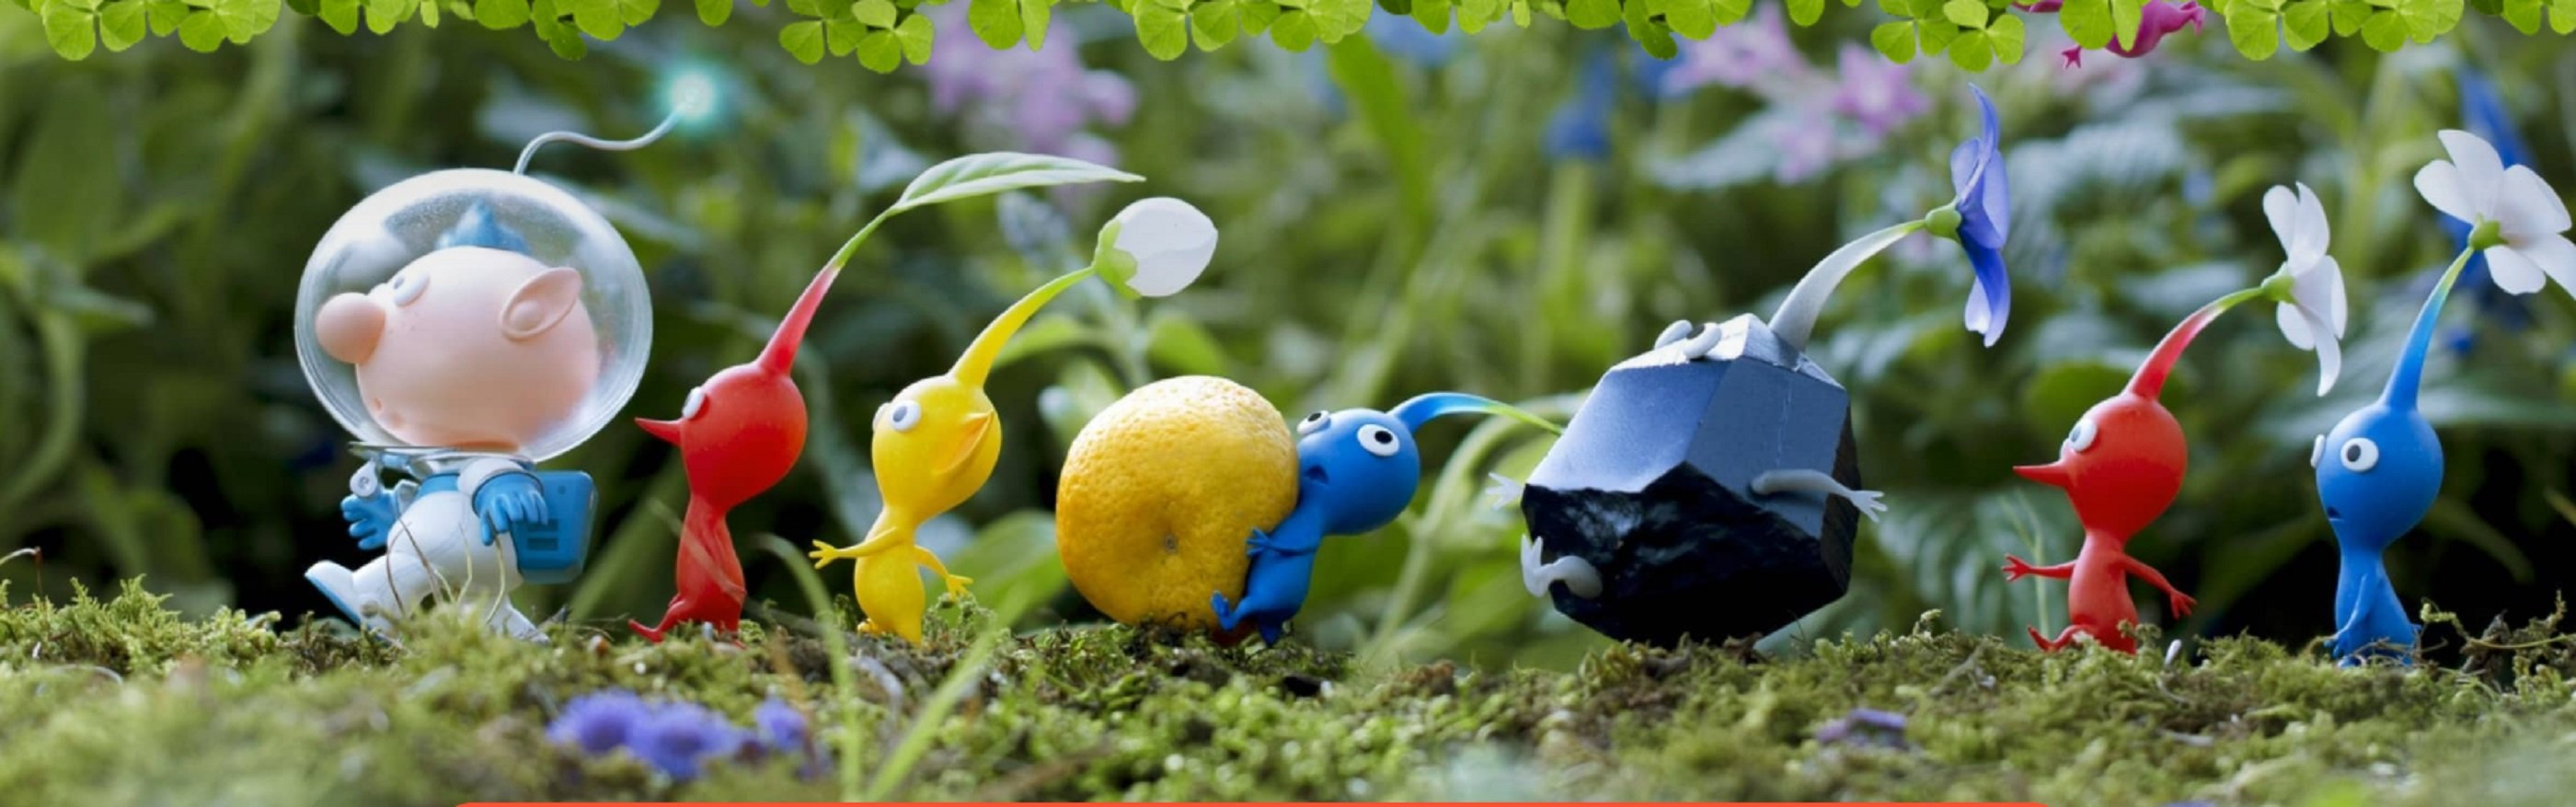 Here's how to get free My Nintendo Platinum Points with the Pikmin 3 quests screenshot